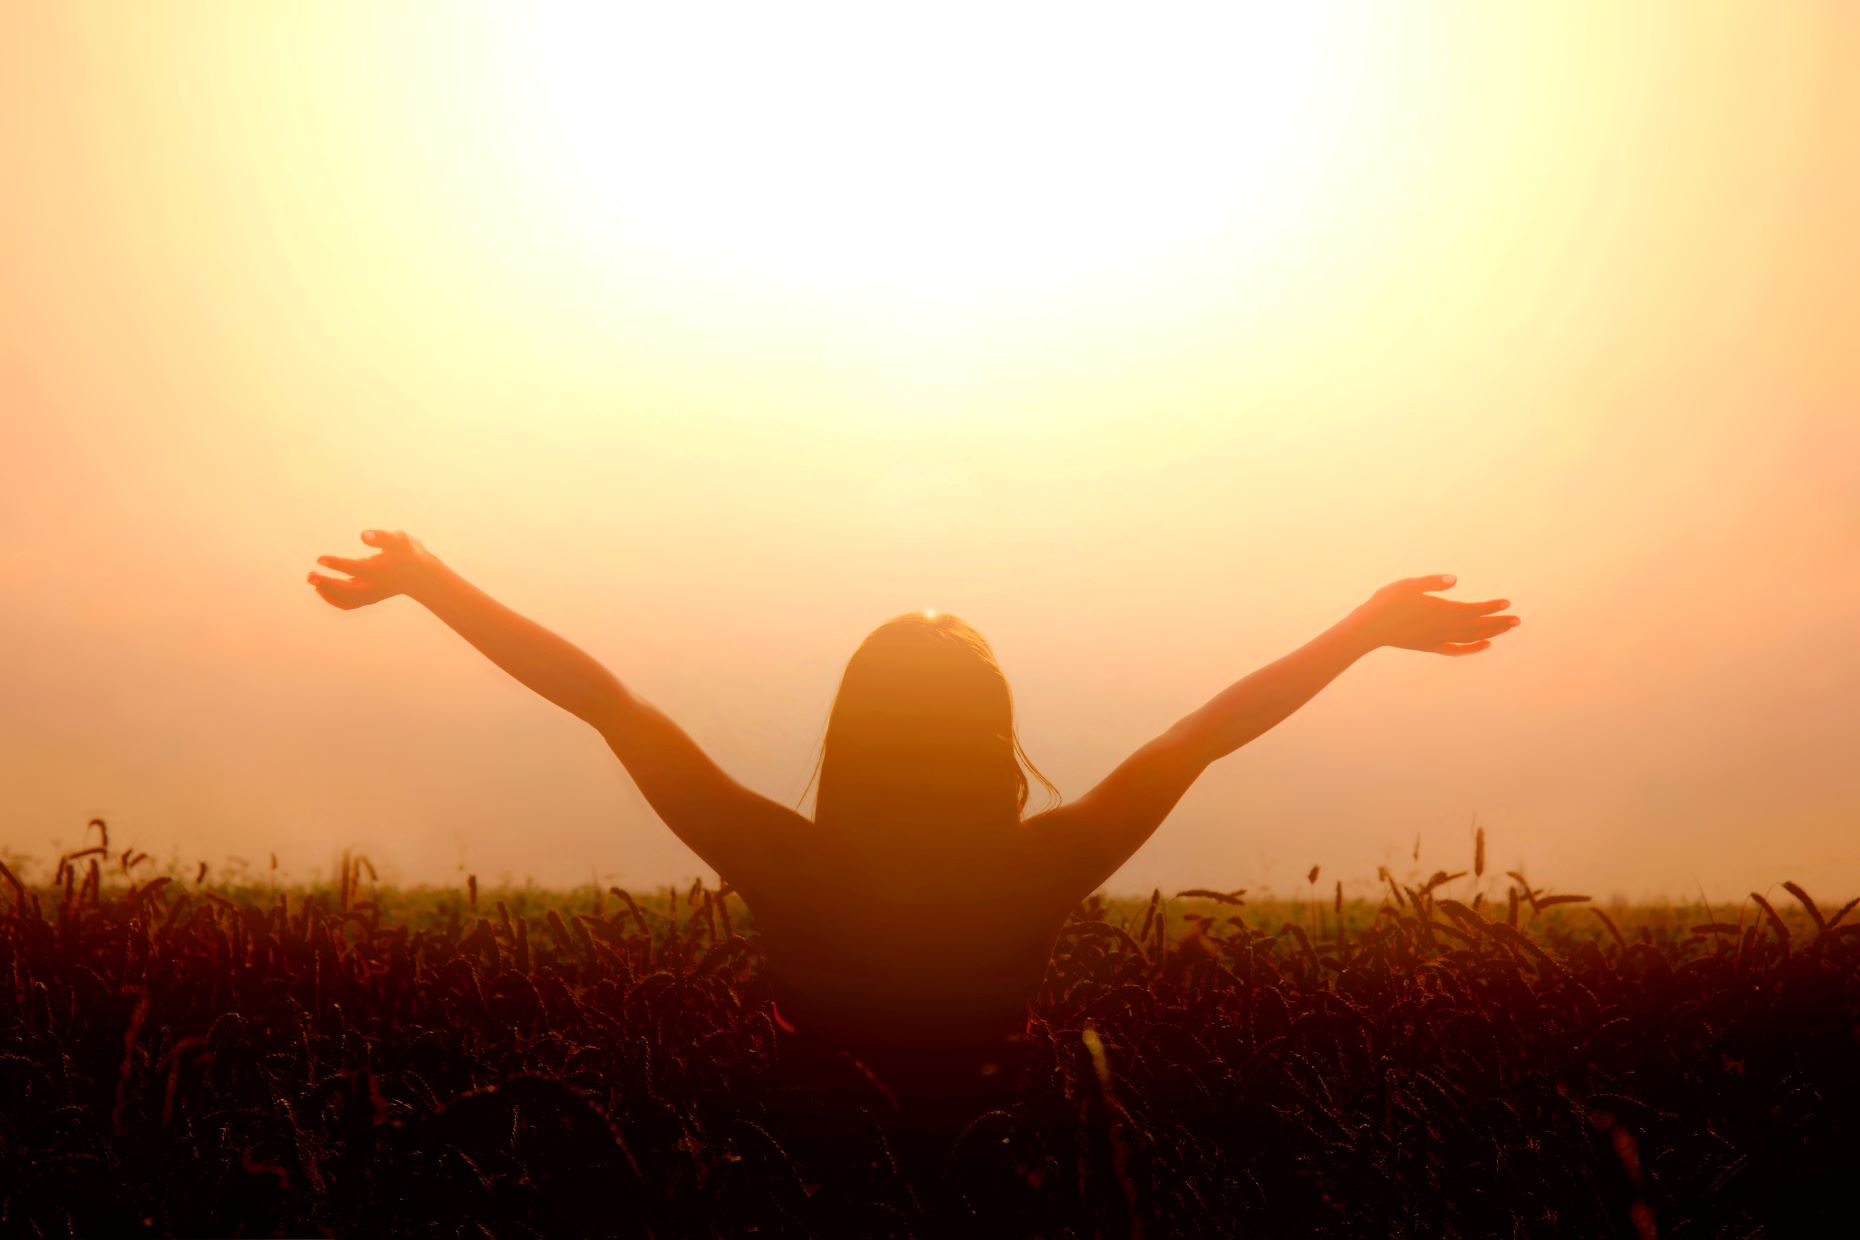 Female in a field lifting her hand up to the sky toward sun